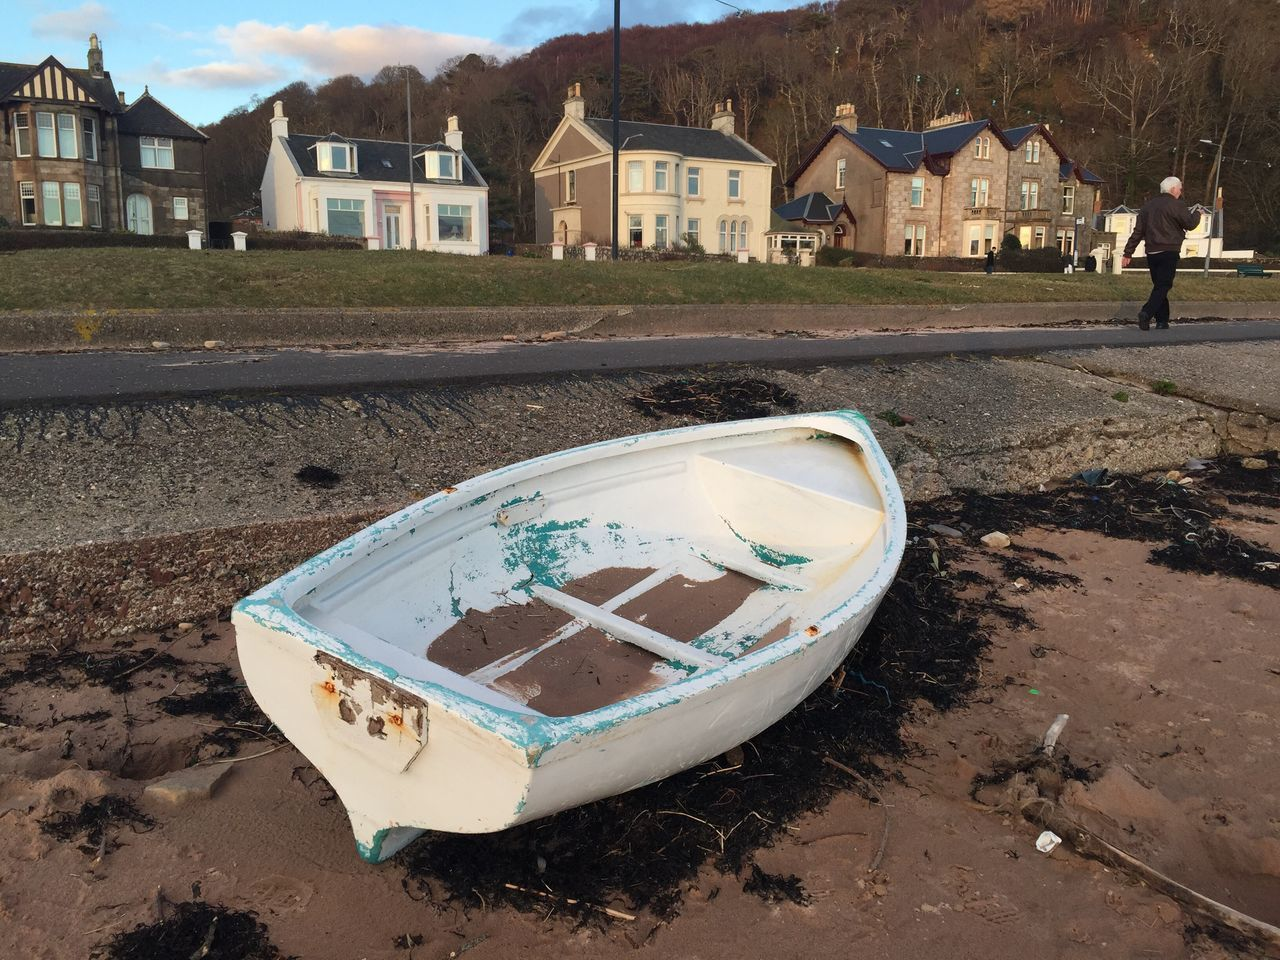 Rowboat Millport Seaside Seascape Beach Beachphotography Boat White Sand Old Boats Old Boat lovely old boat I found in millport